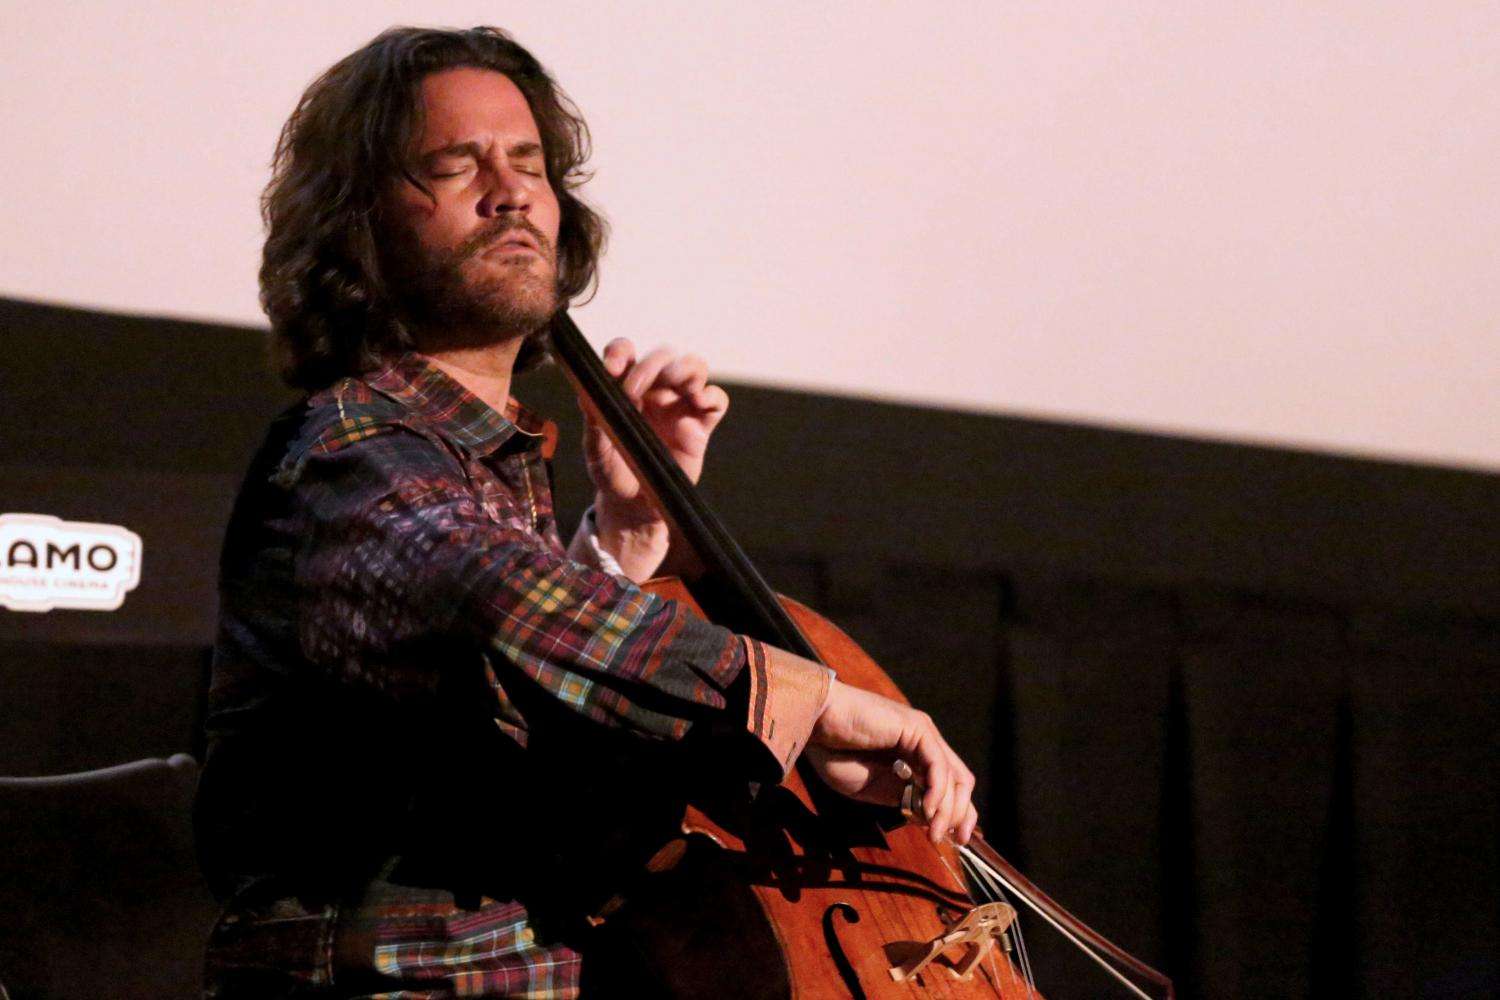 Zuili Bailey plays his 325 year old cello before the showing of Goldfinger at the Alamo Drafthouse.